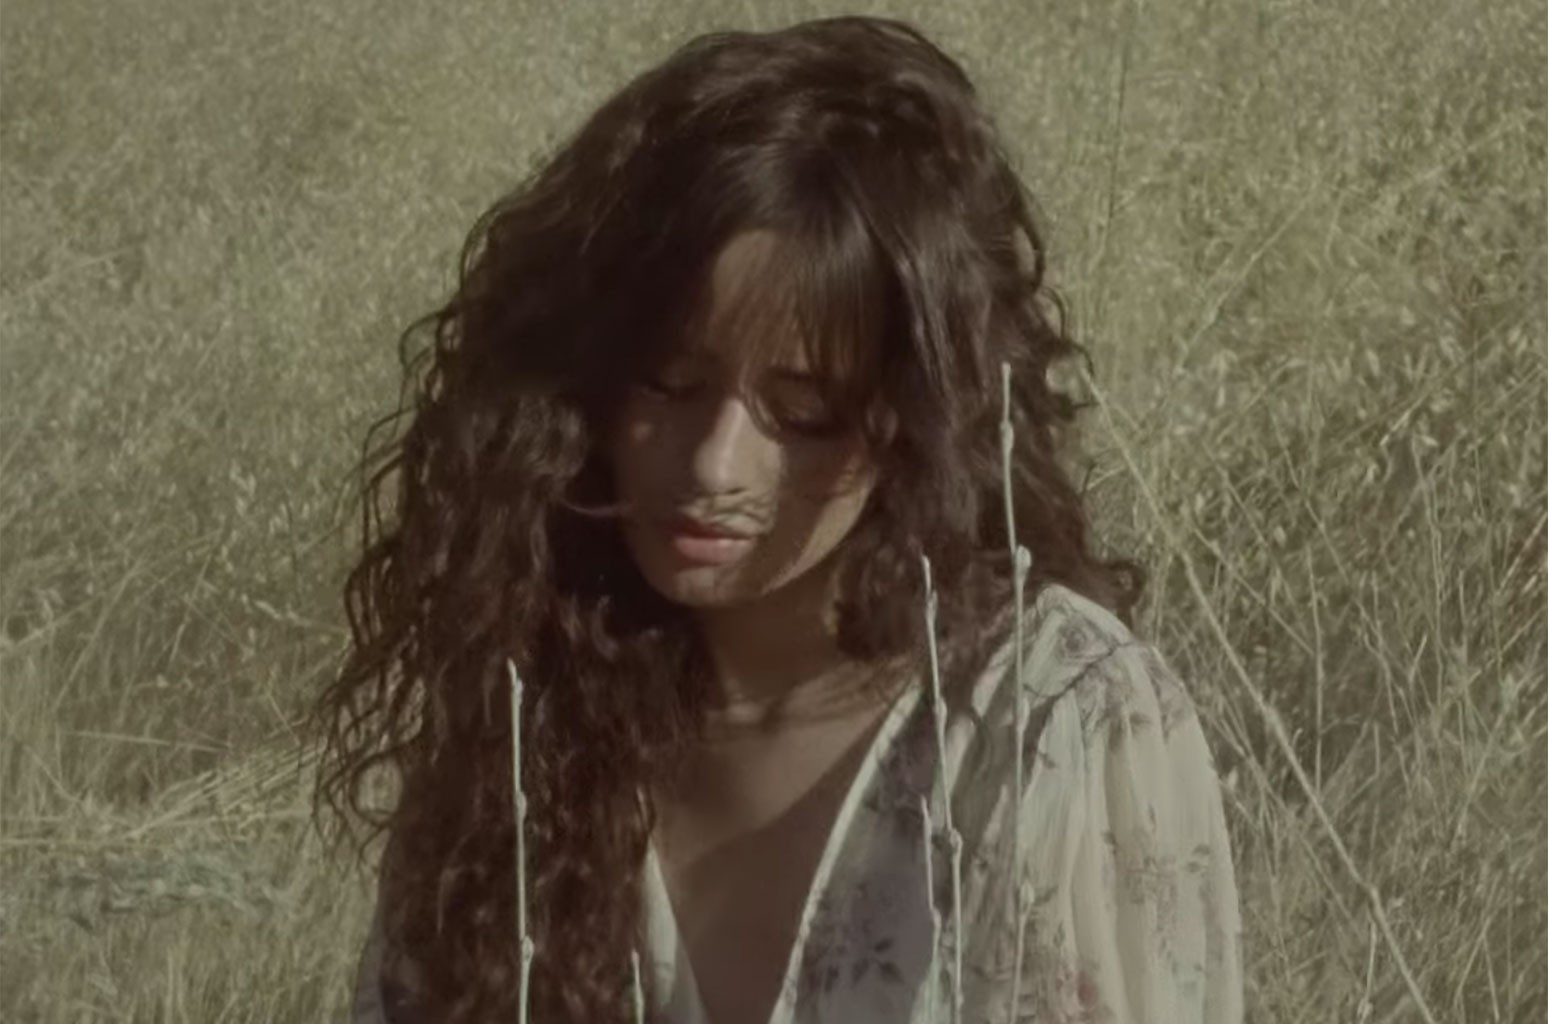 Camila Cabello What Do I Know About Love